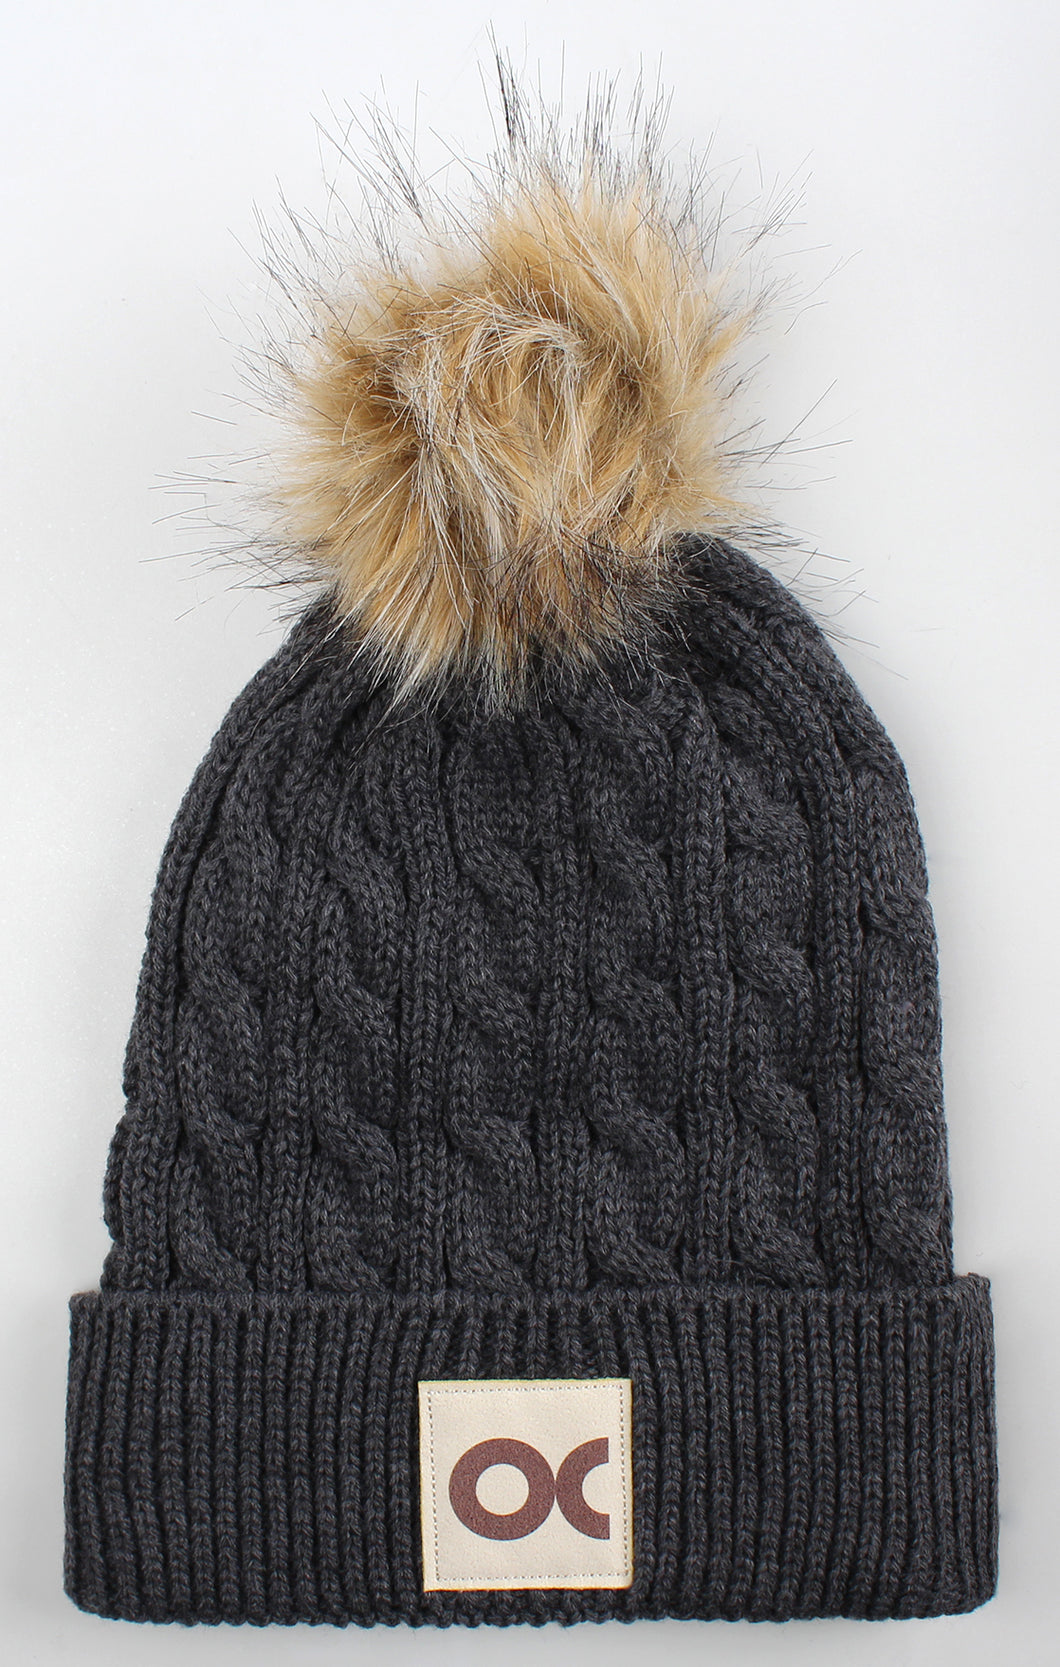 Ahead, Ladies Knit Beanie W/Pom, Charcoal Heather